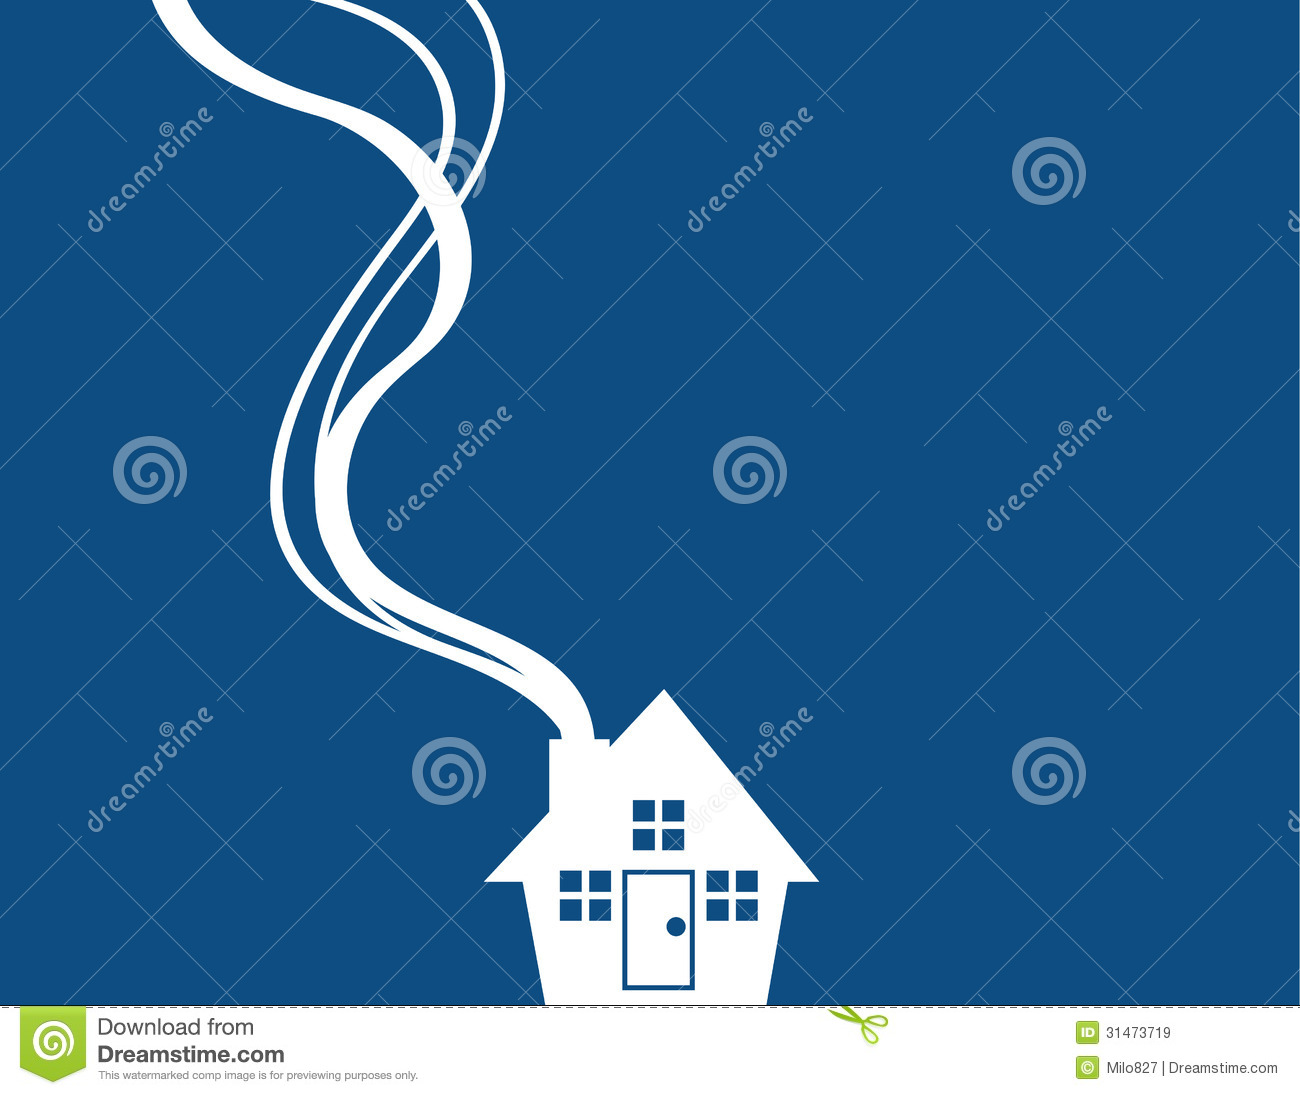 House Silhouette Minimal Blue Stock Vector - Illustration of